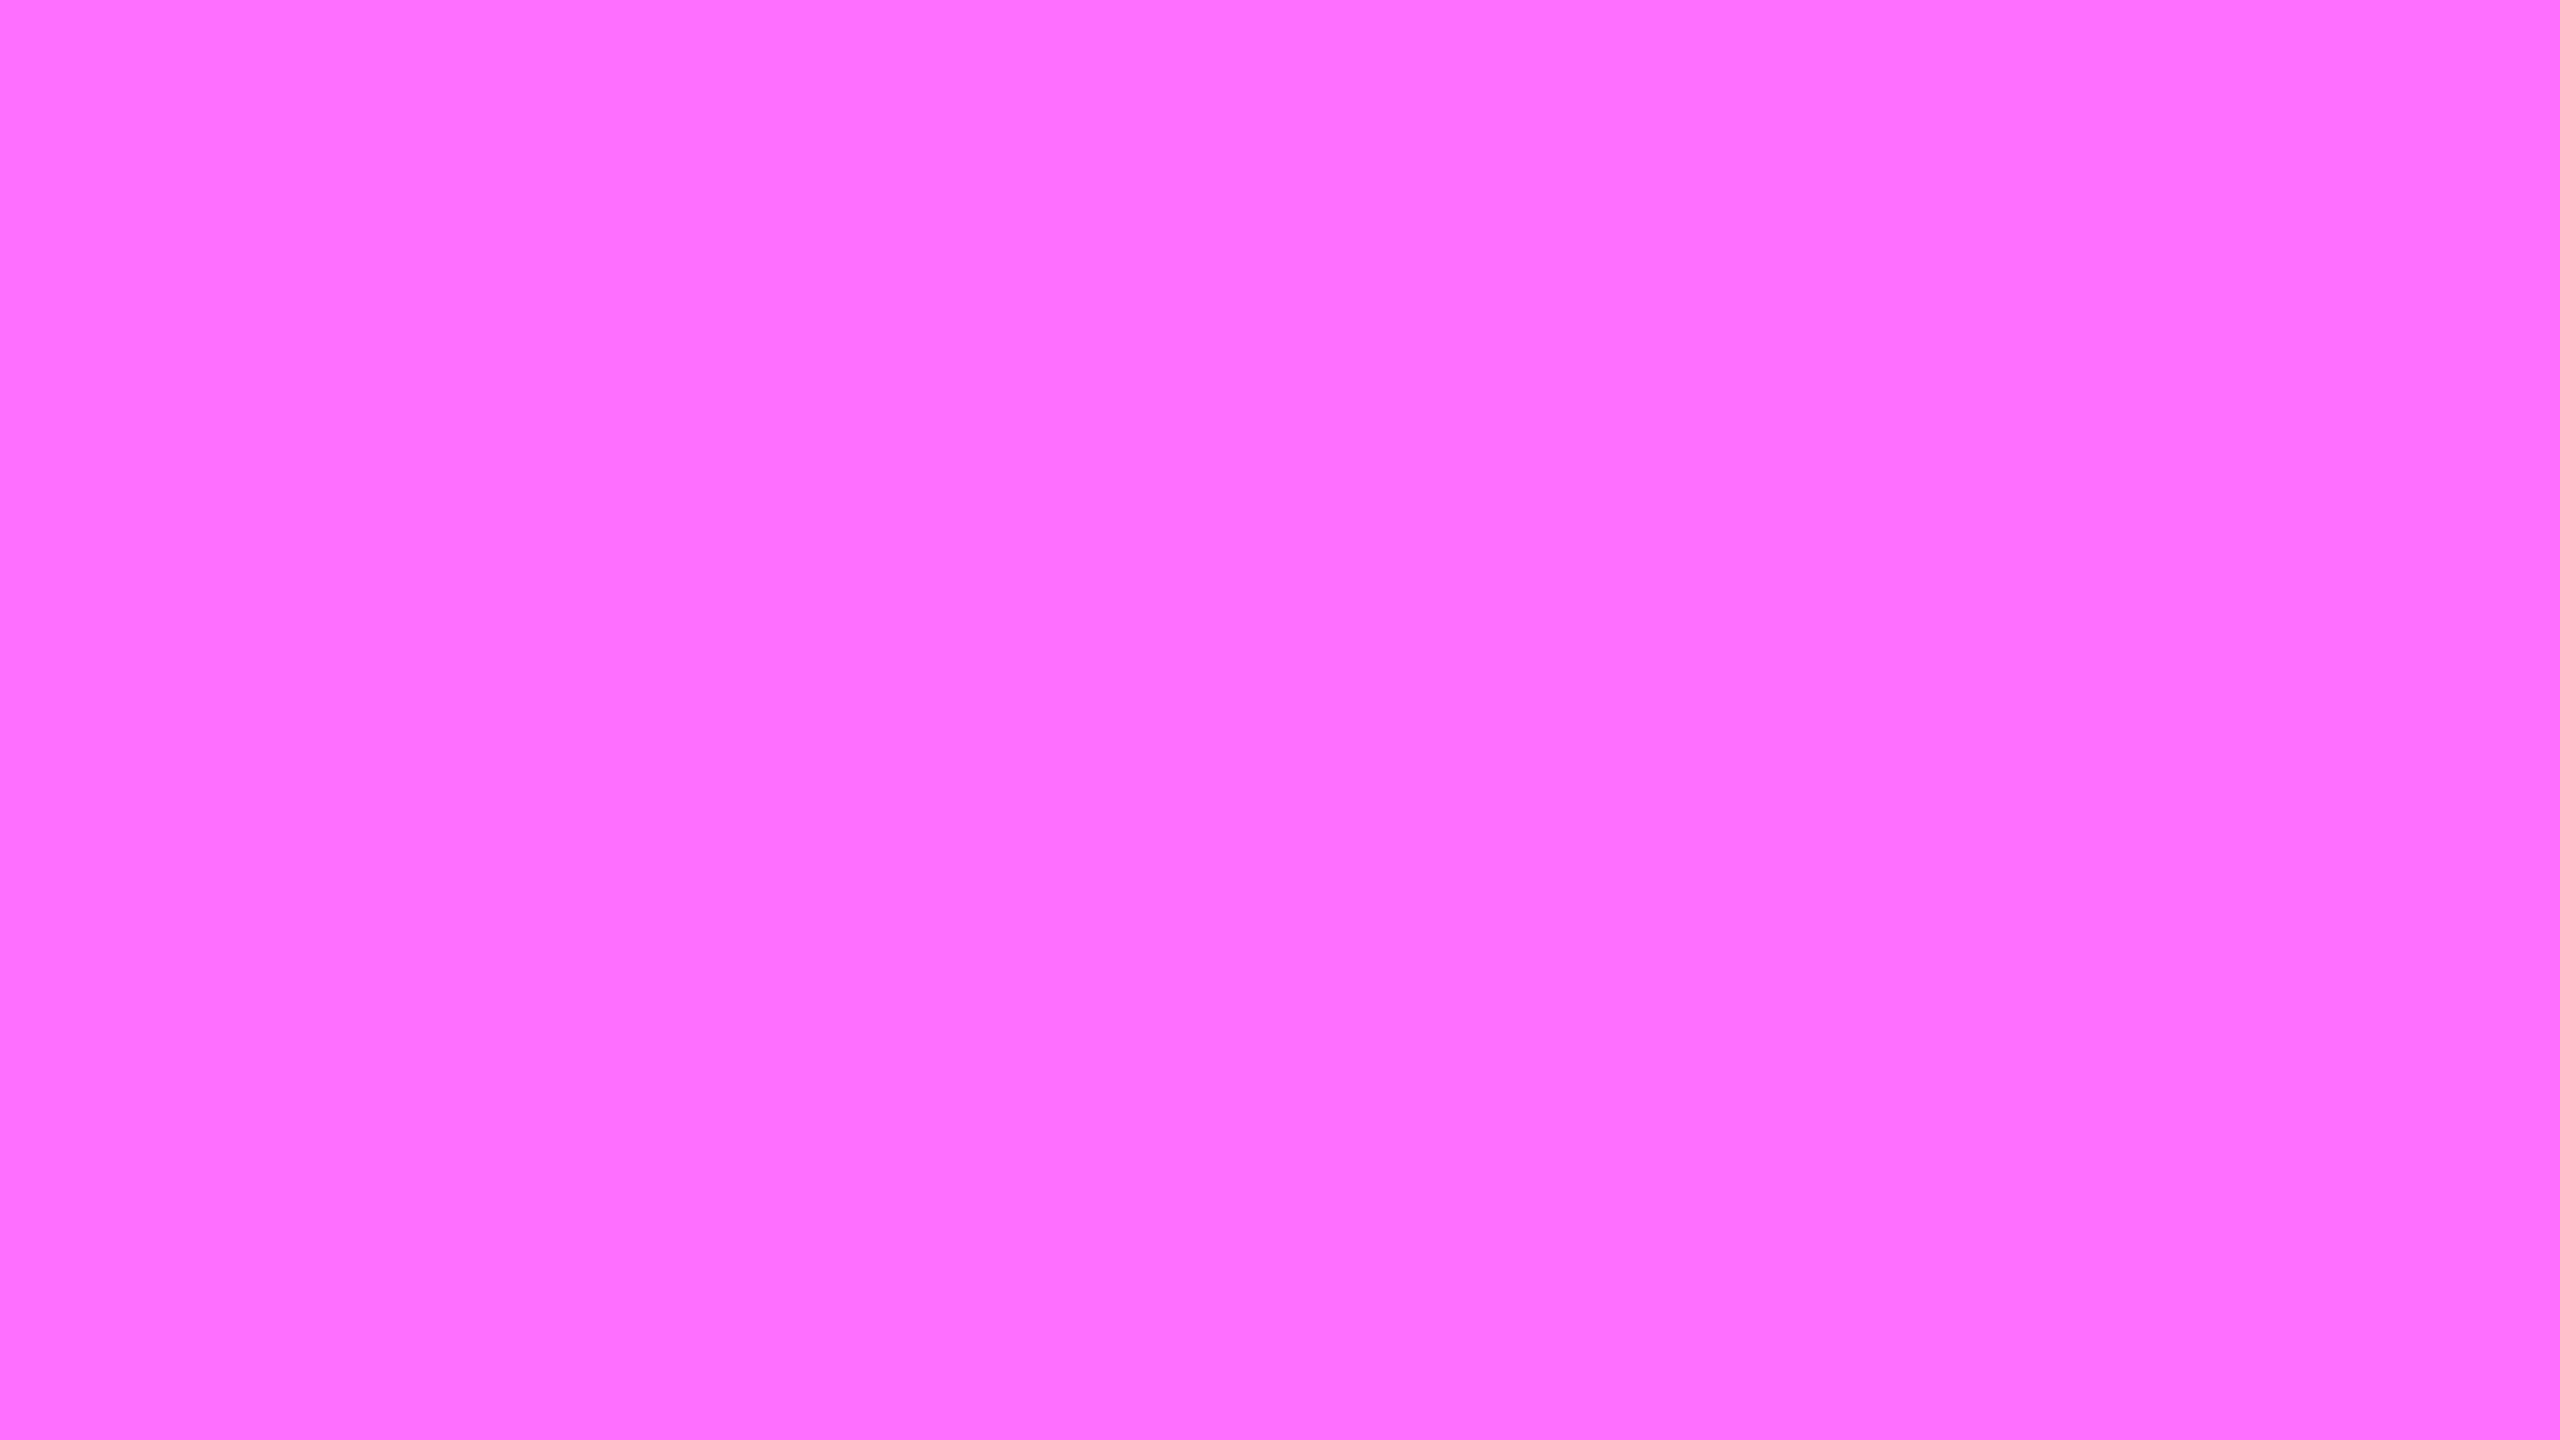 2560x1440 Ultra Pink Solid Color Background